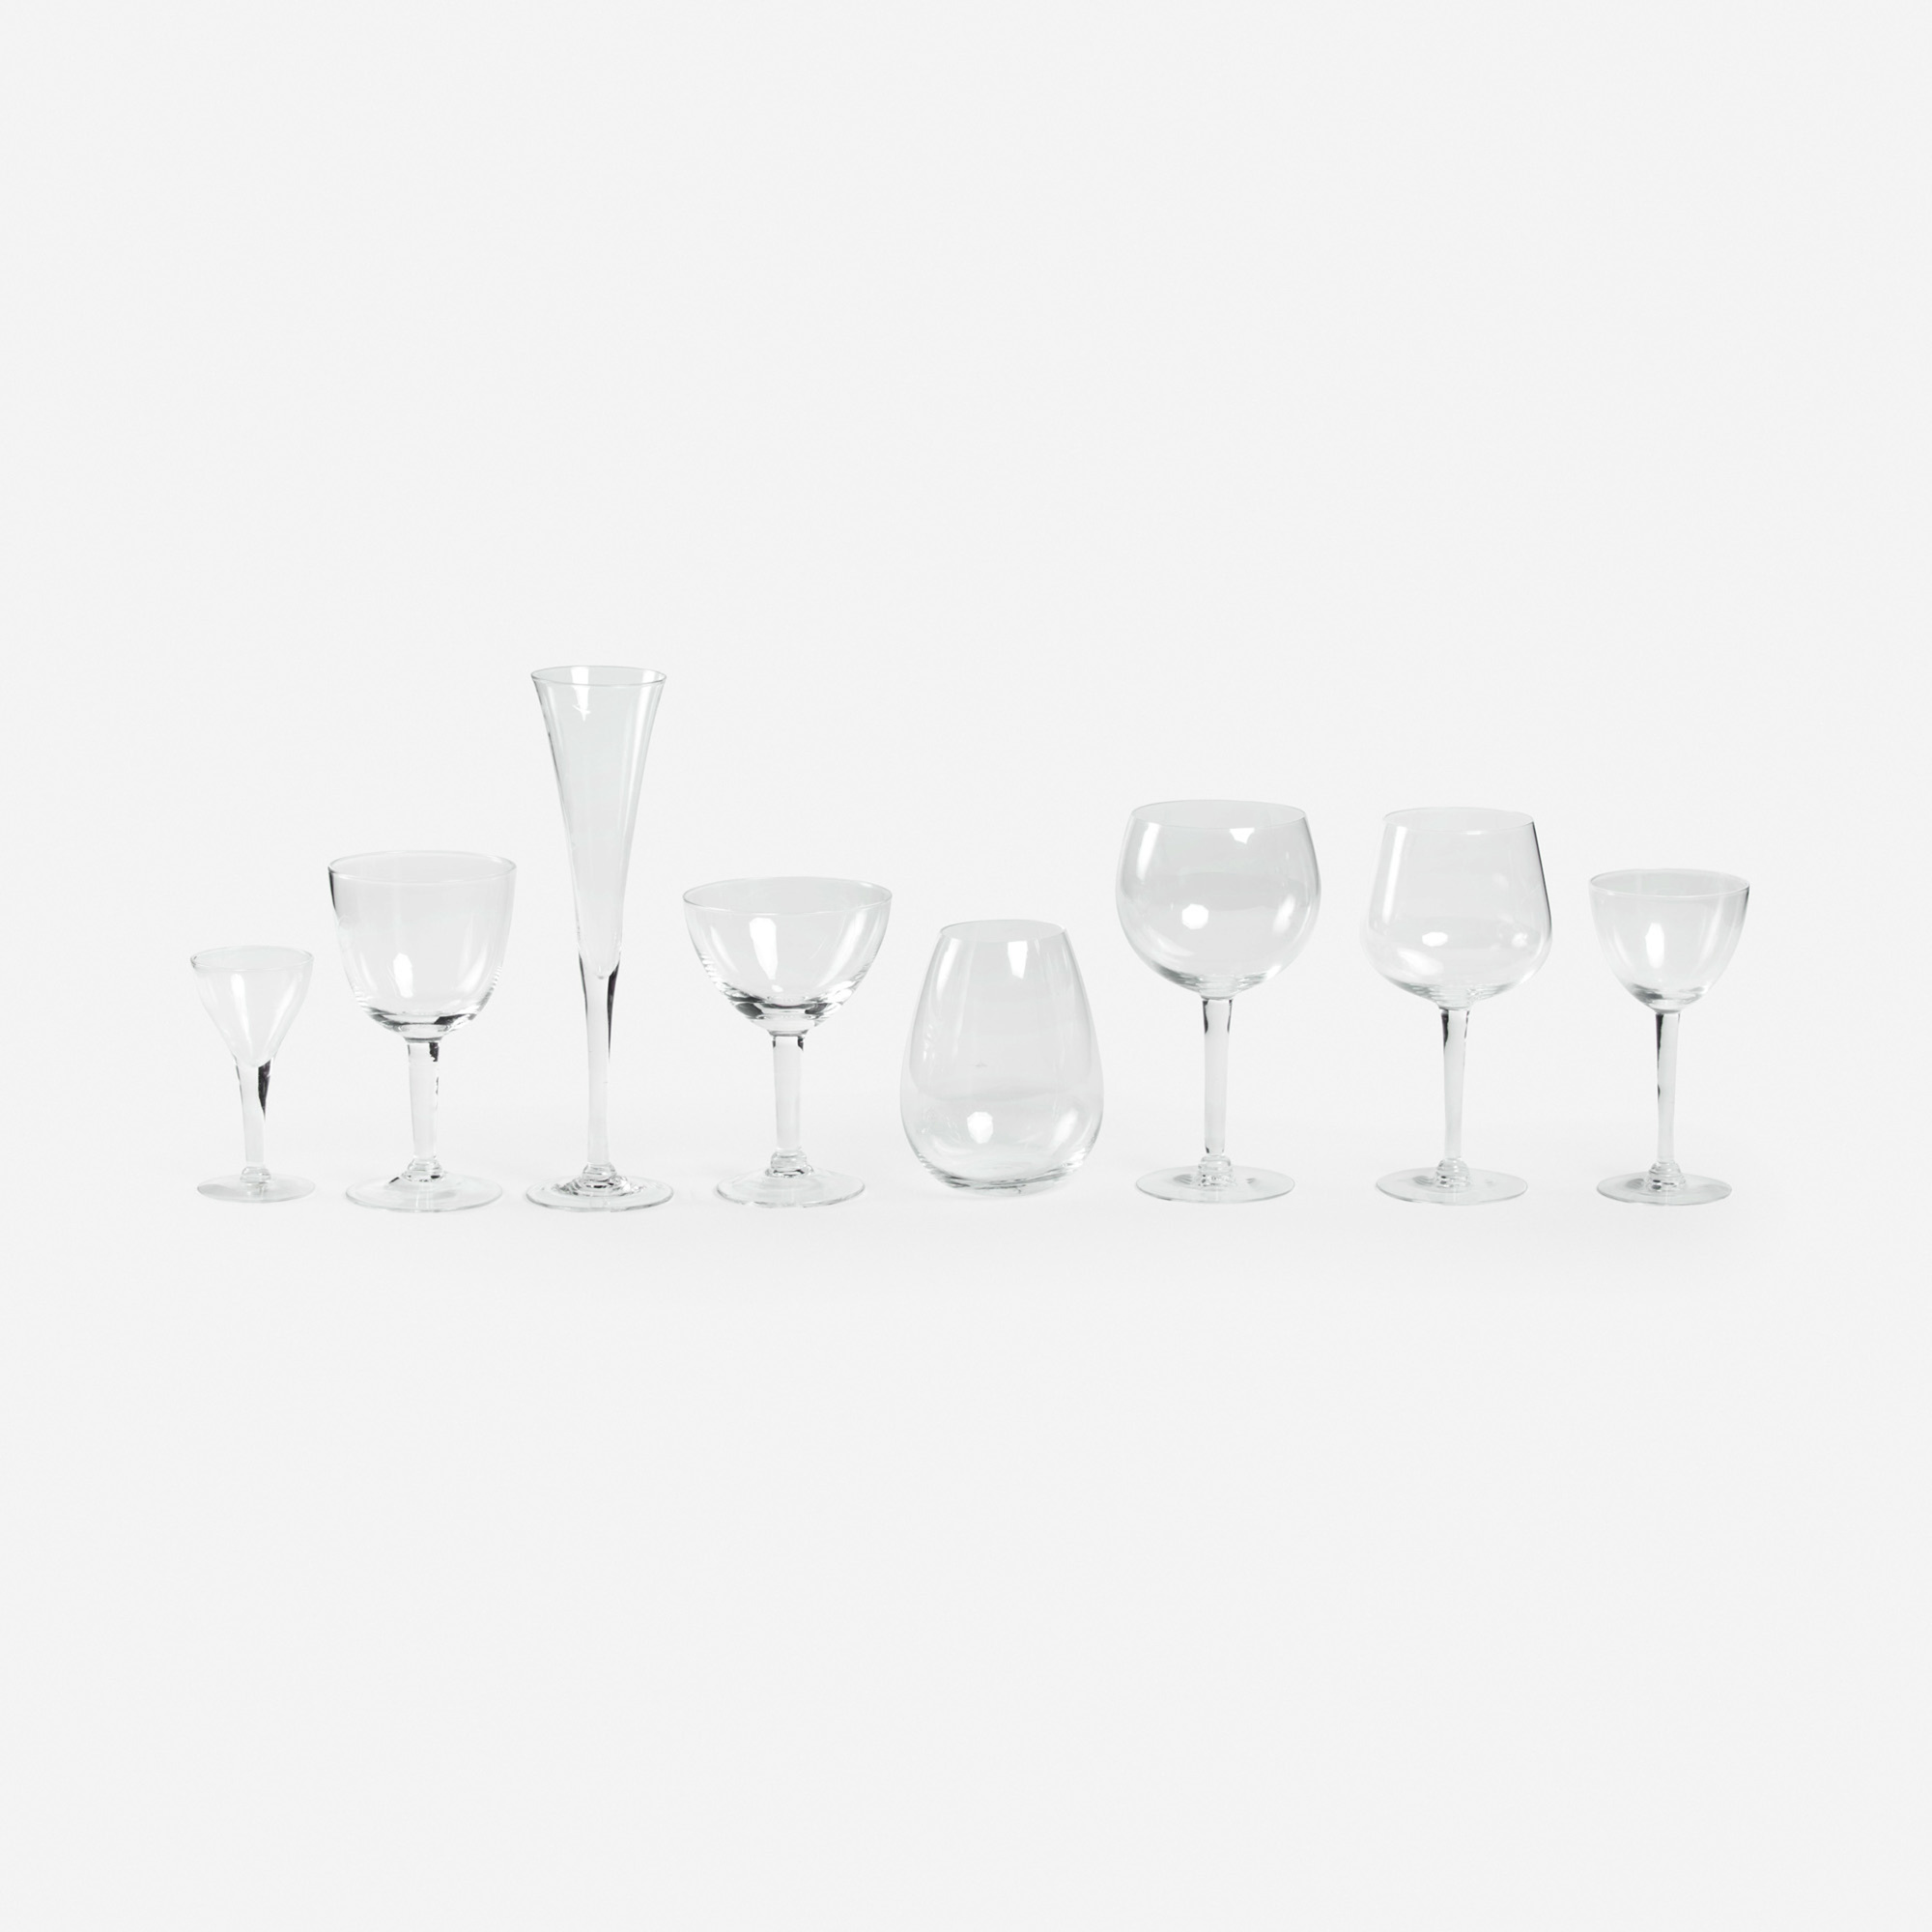 315: Garth and Ada Louise Huxtable / Stemware Collection from The Four Seasons, service for two (1 of 1)